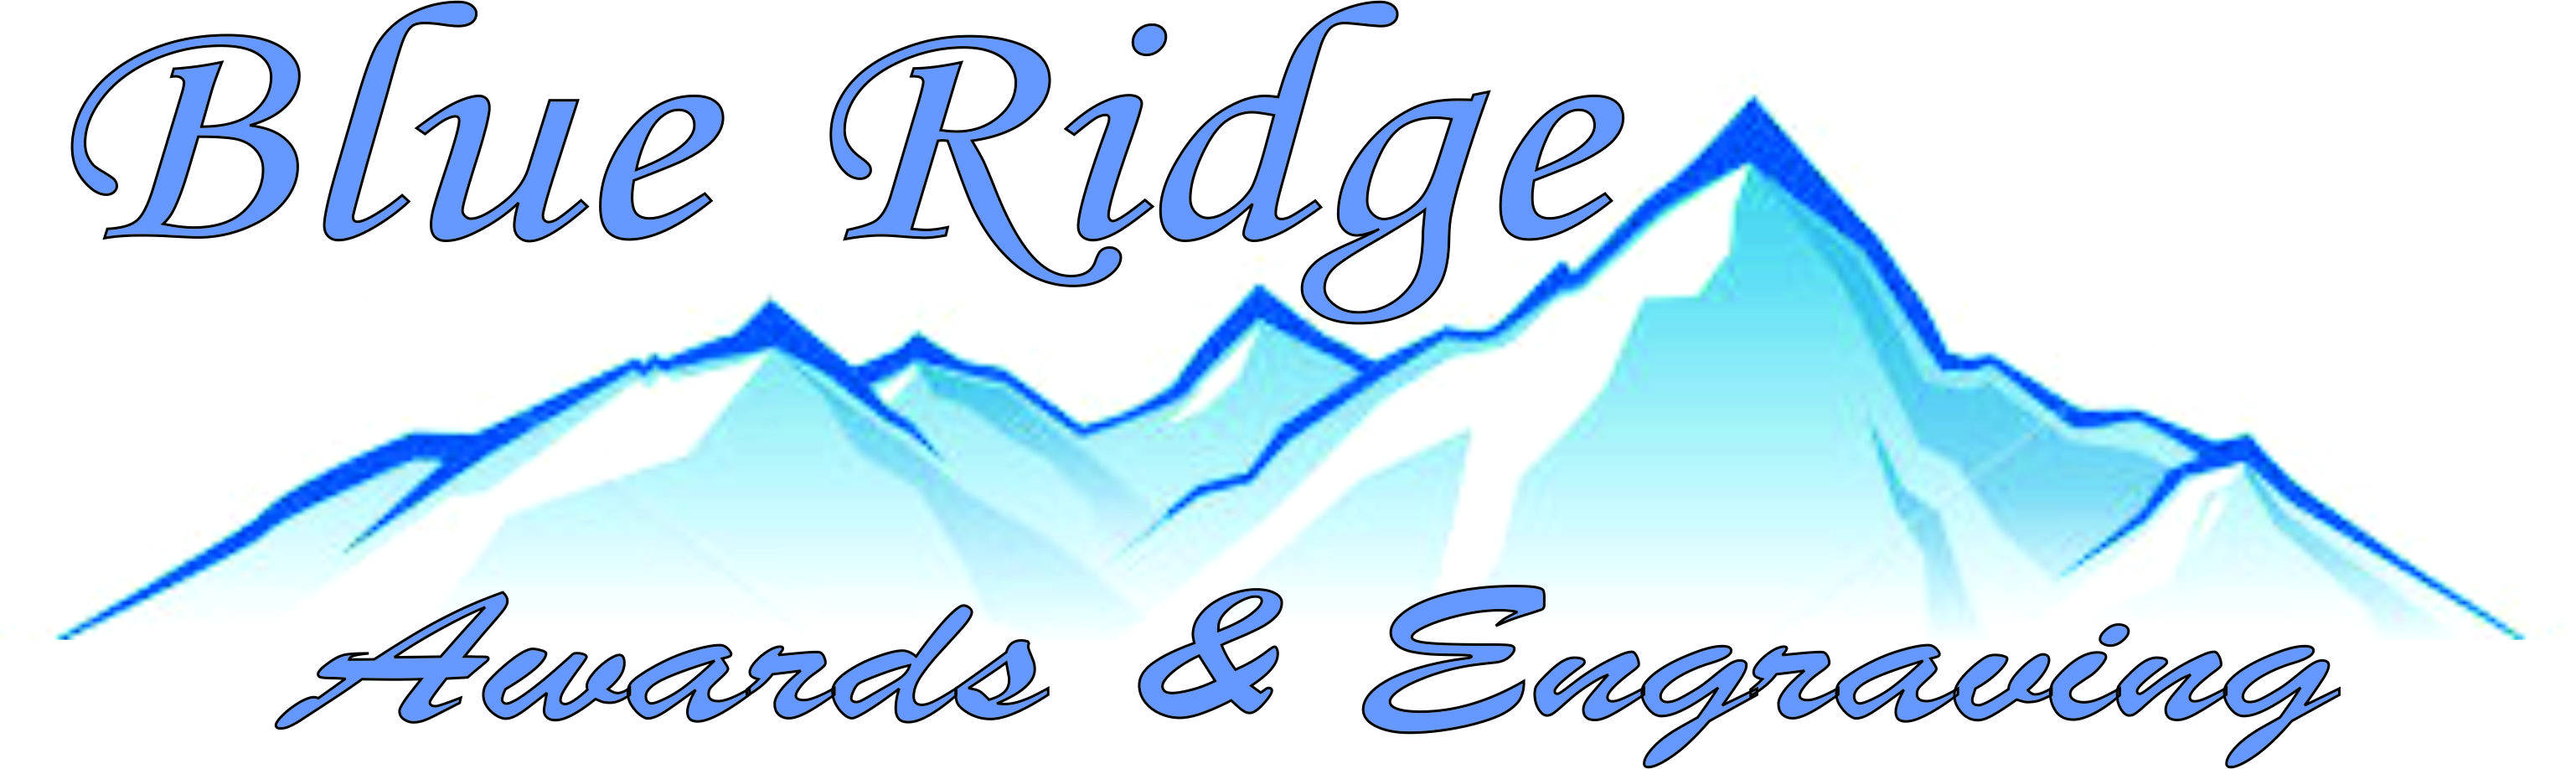 Blue Ridge Awards & Engraving, Inc.